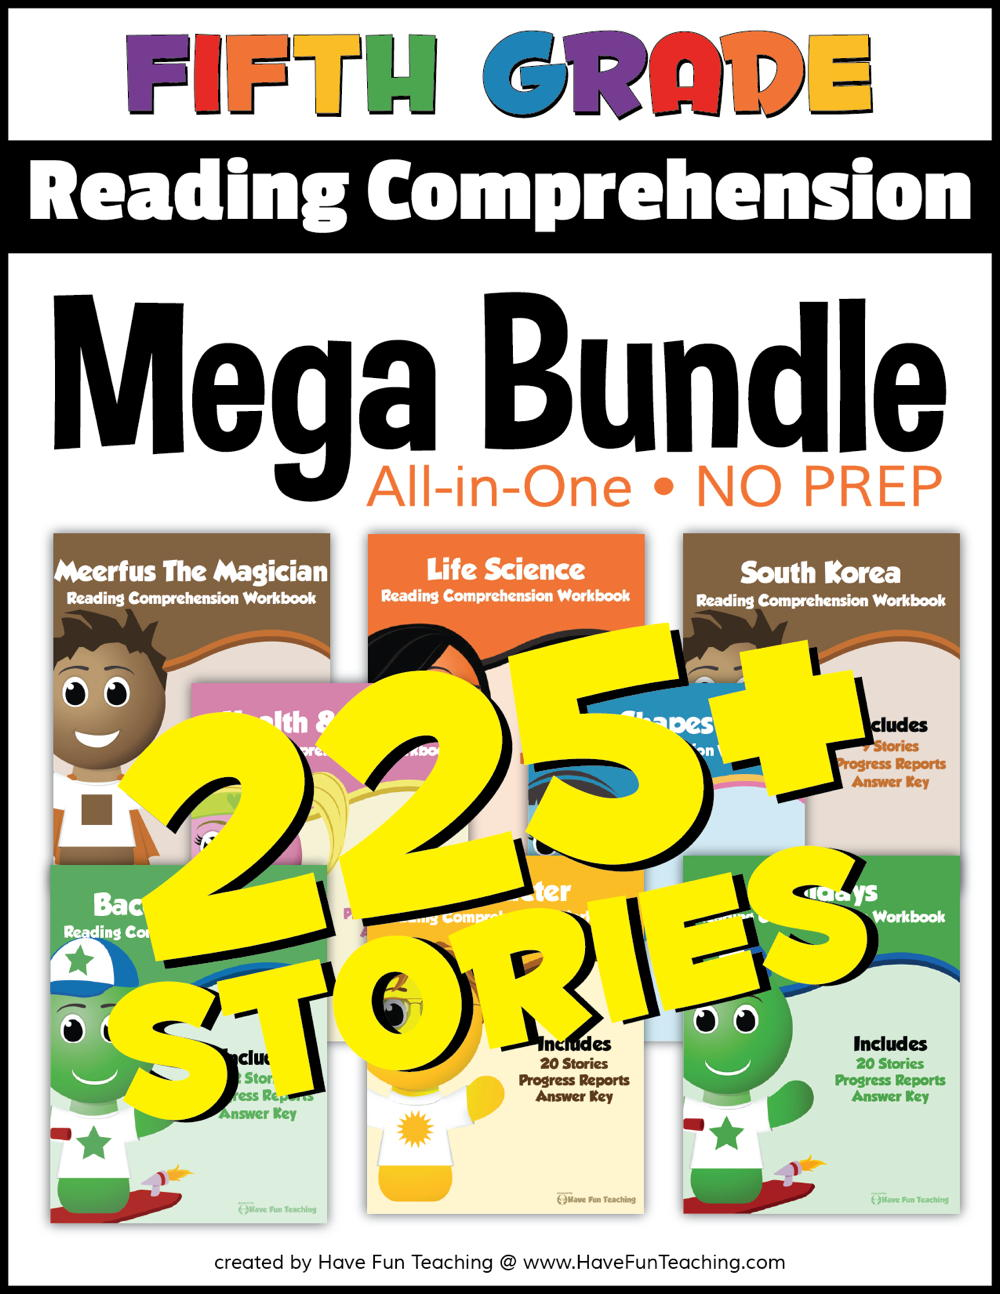 Fifth Grade Reading Comprehension - No Prep All In One Mega Bundle